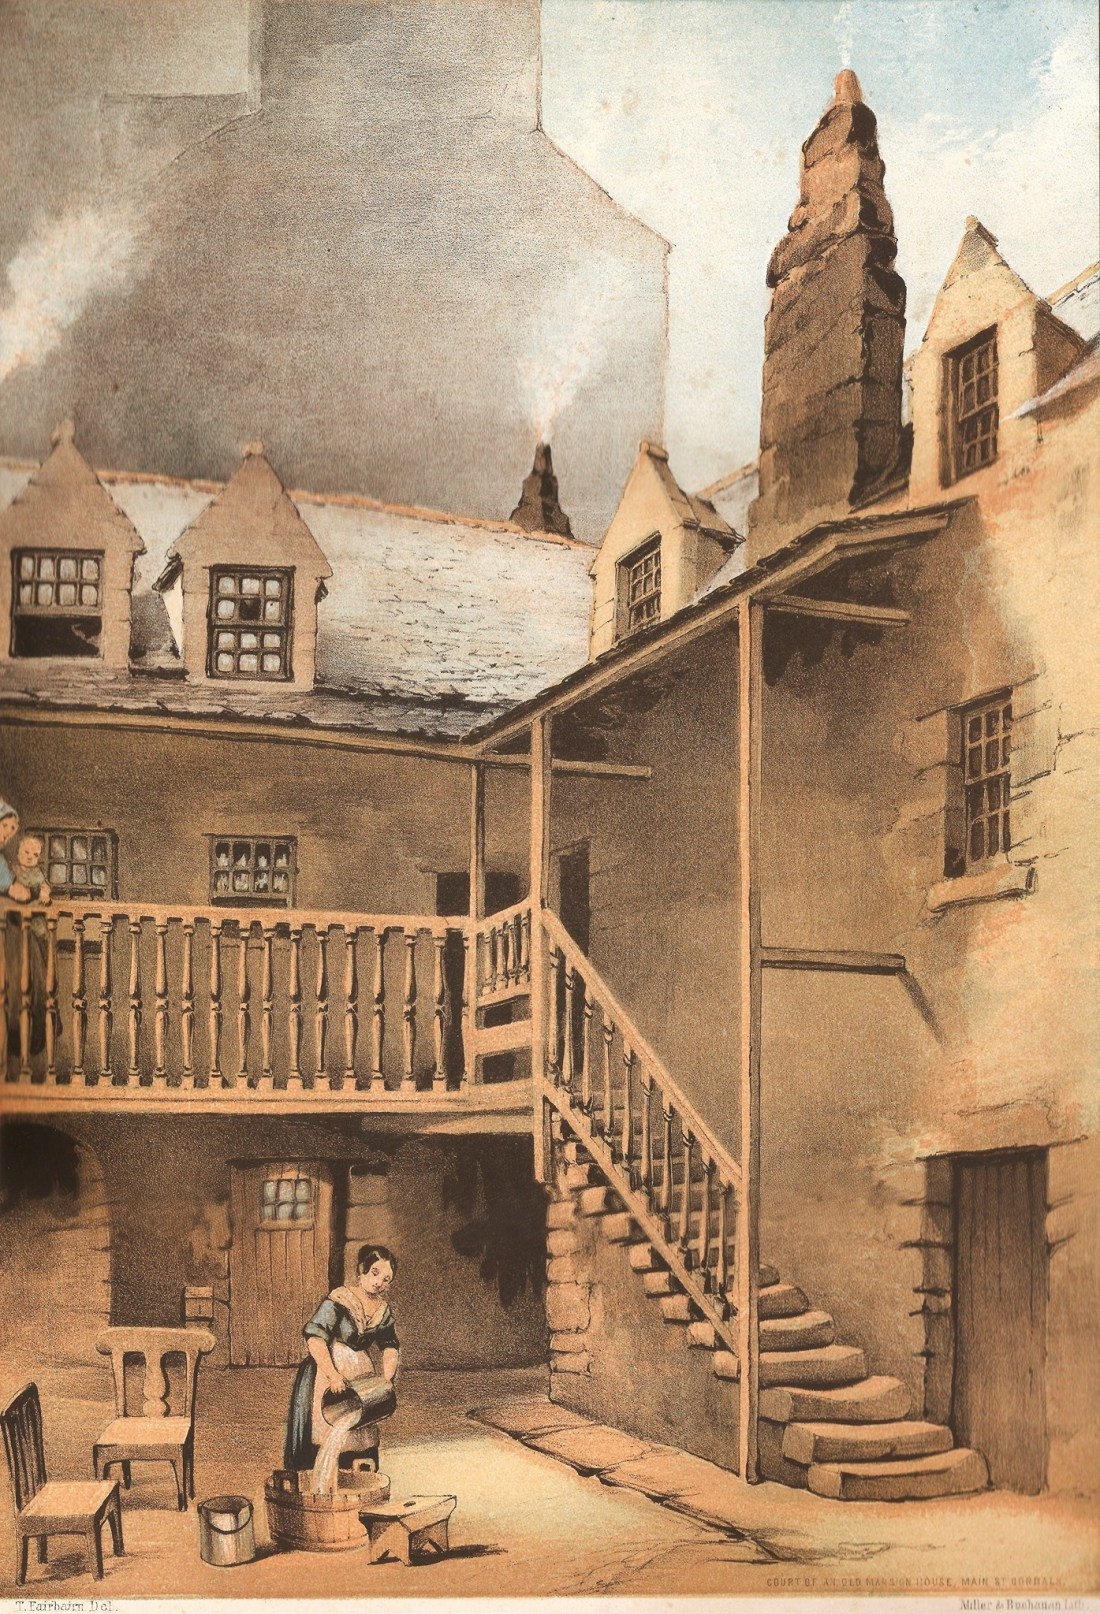 Lithograph 5 - Mansion house, Main St. Gorbals